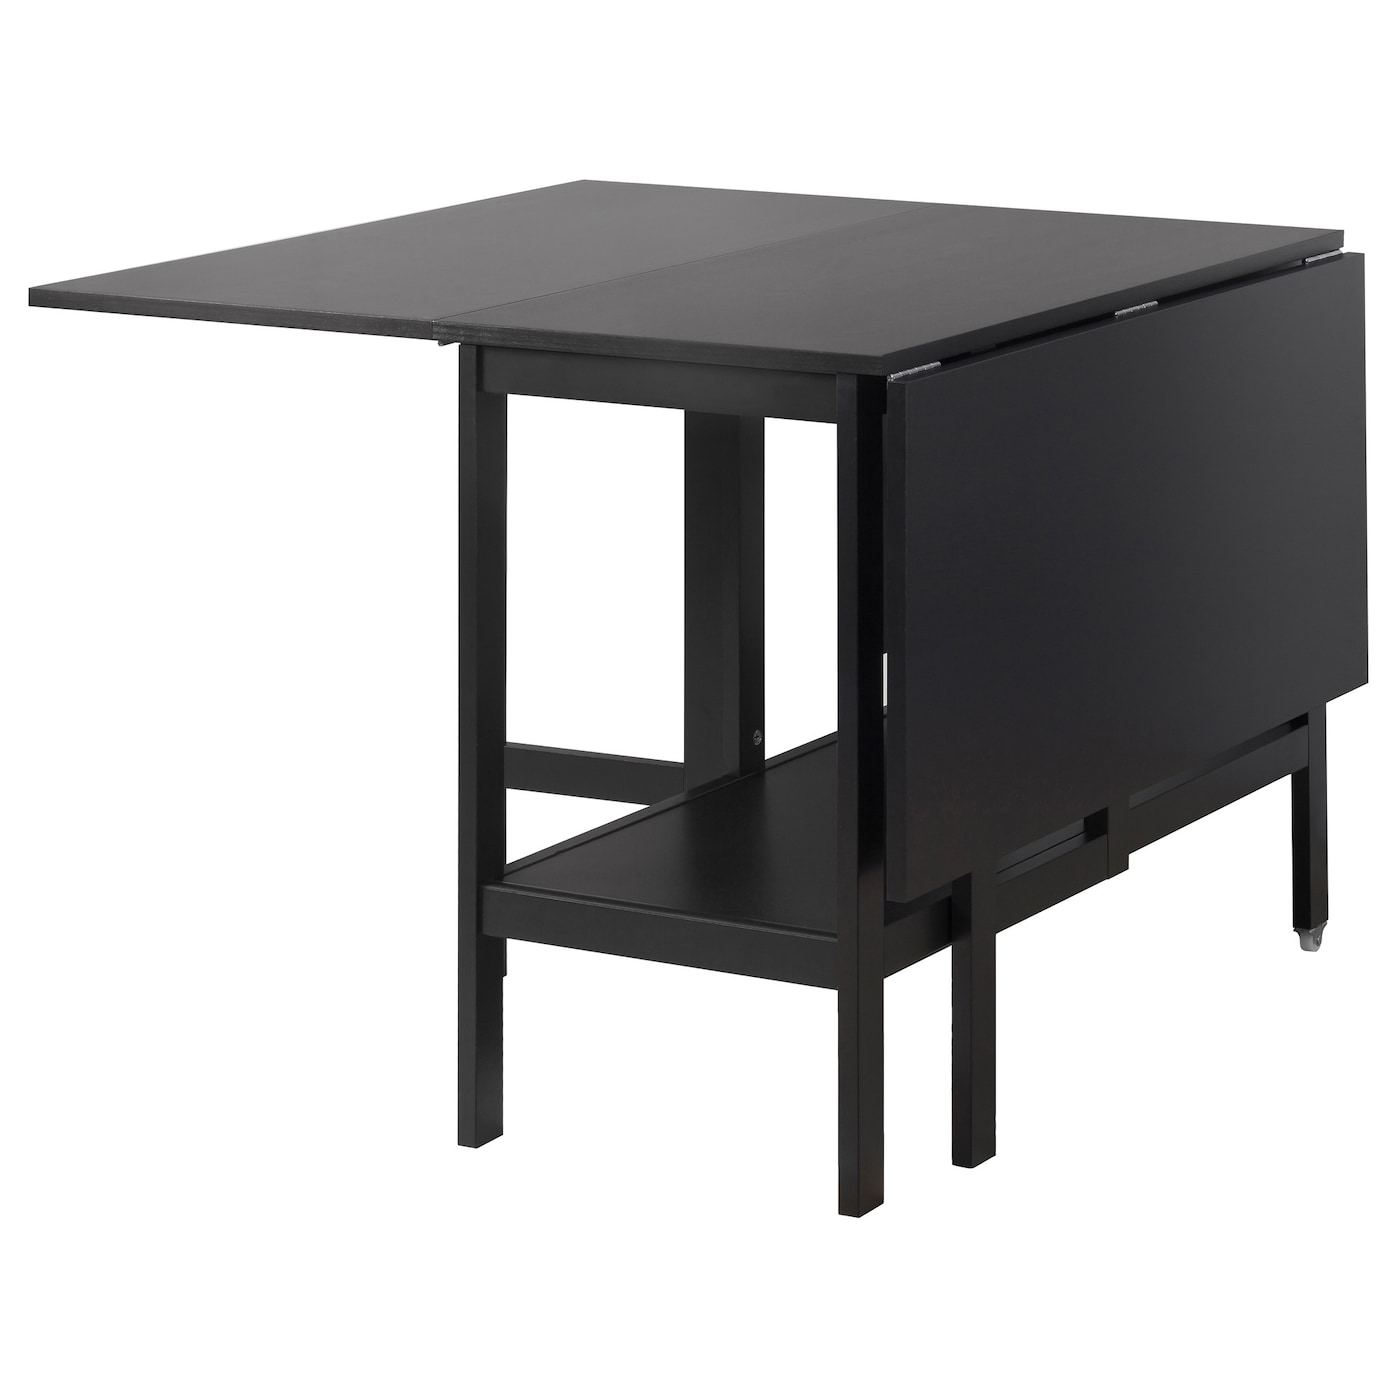 BARSVIKEN Drop leaf table Black 4590135x93 cm IKEA : barsviken drop leaf table black0368935pe549758s5 from www.ikea.com size 2000 x 2000 jpeg 176kB